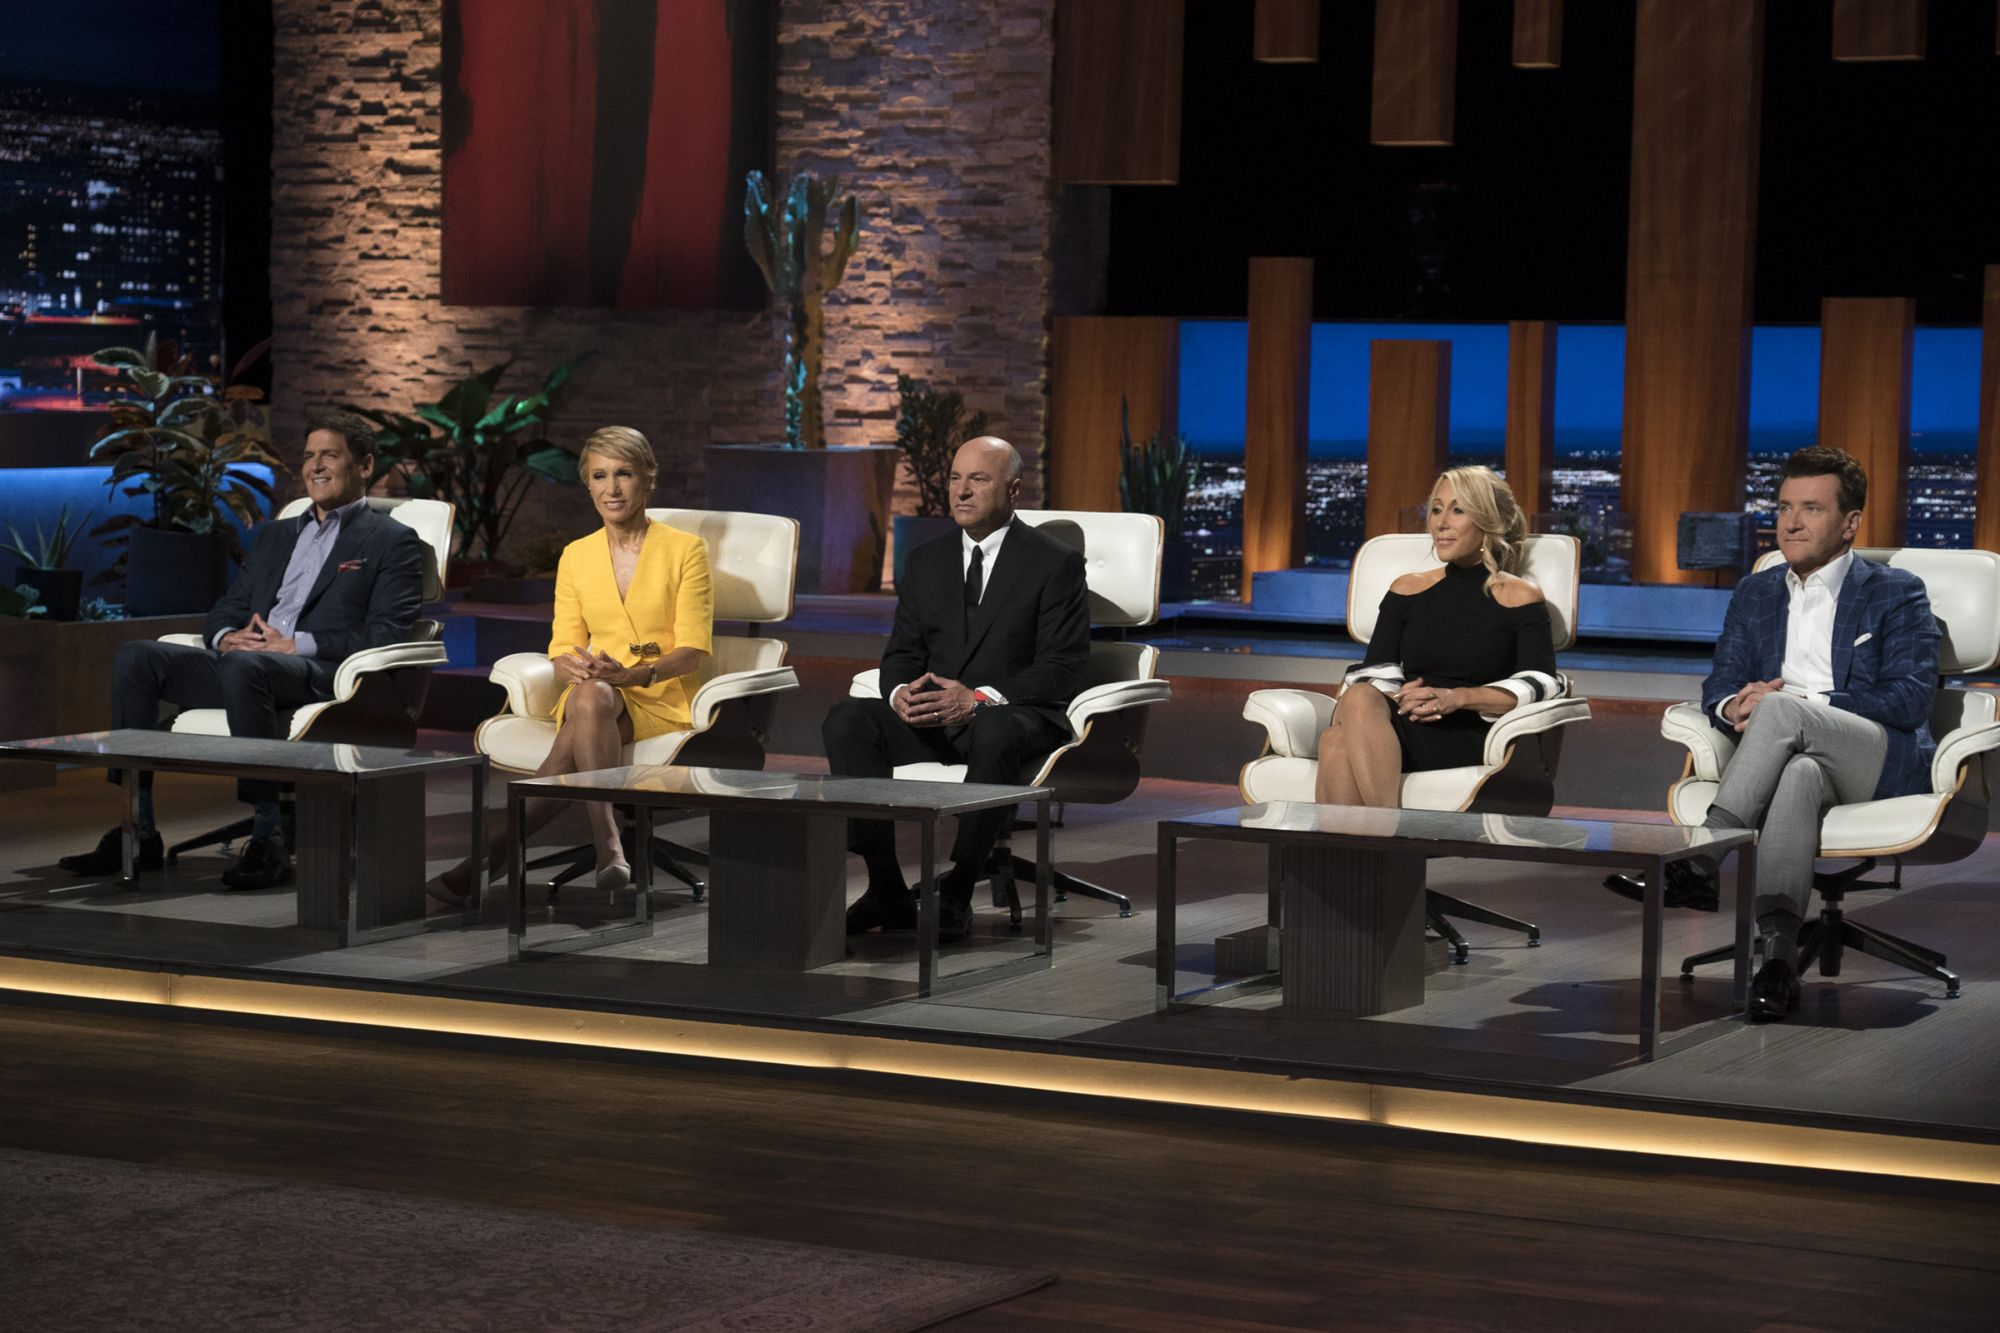 'Shark Tank' Investors Reveal Top 5 Tips to Make Your Business Famous